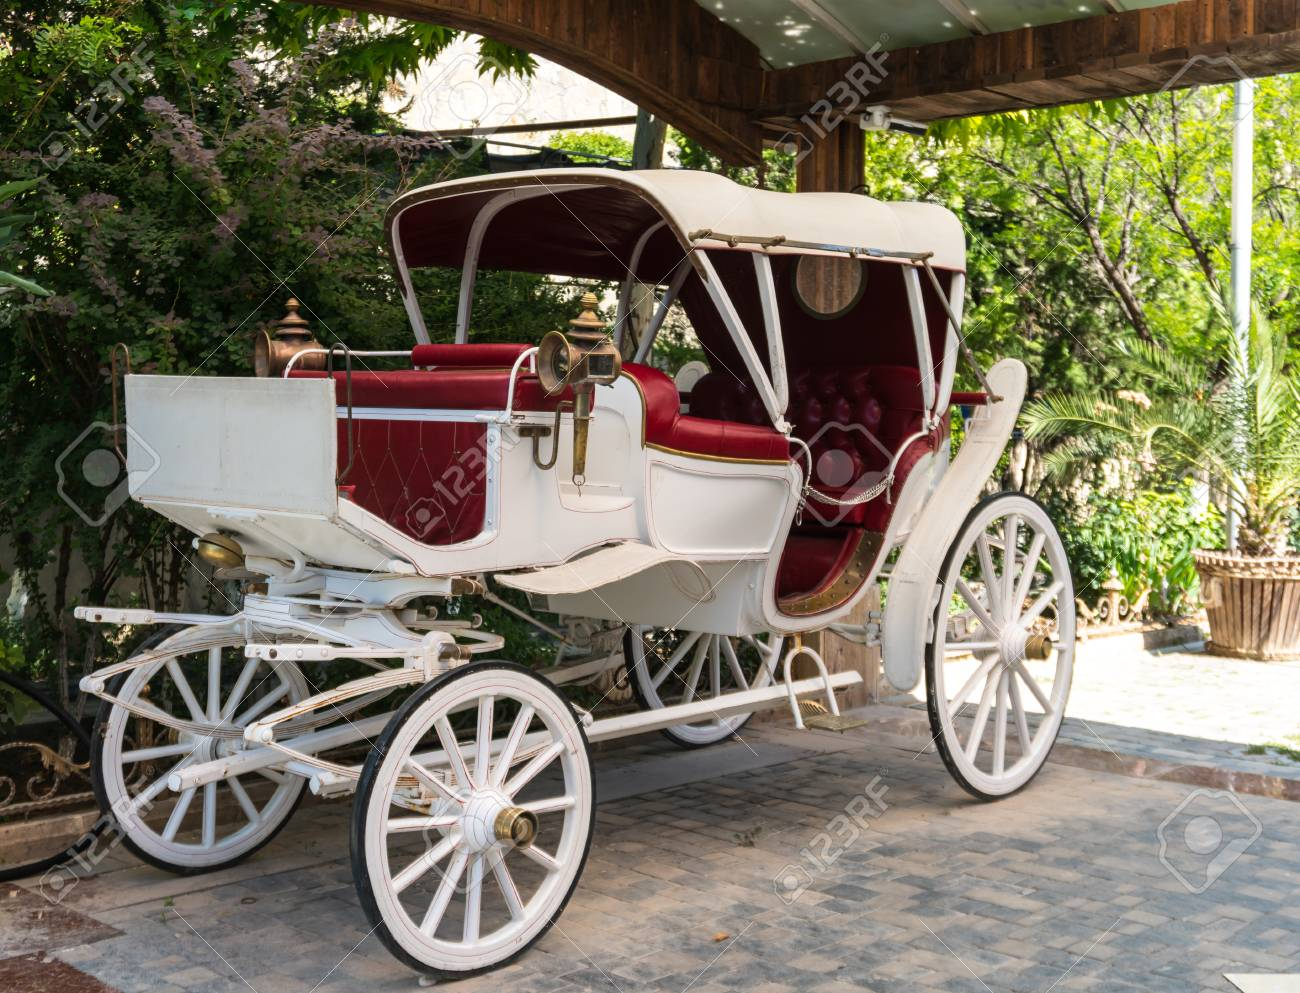 Old Or Antique White Horse Drawn Carriage Mock Up Stock Photo Picture And Royalty Free Image Image 104361051